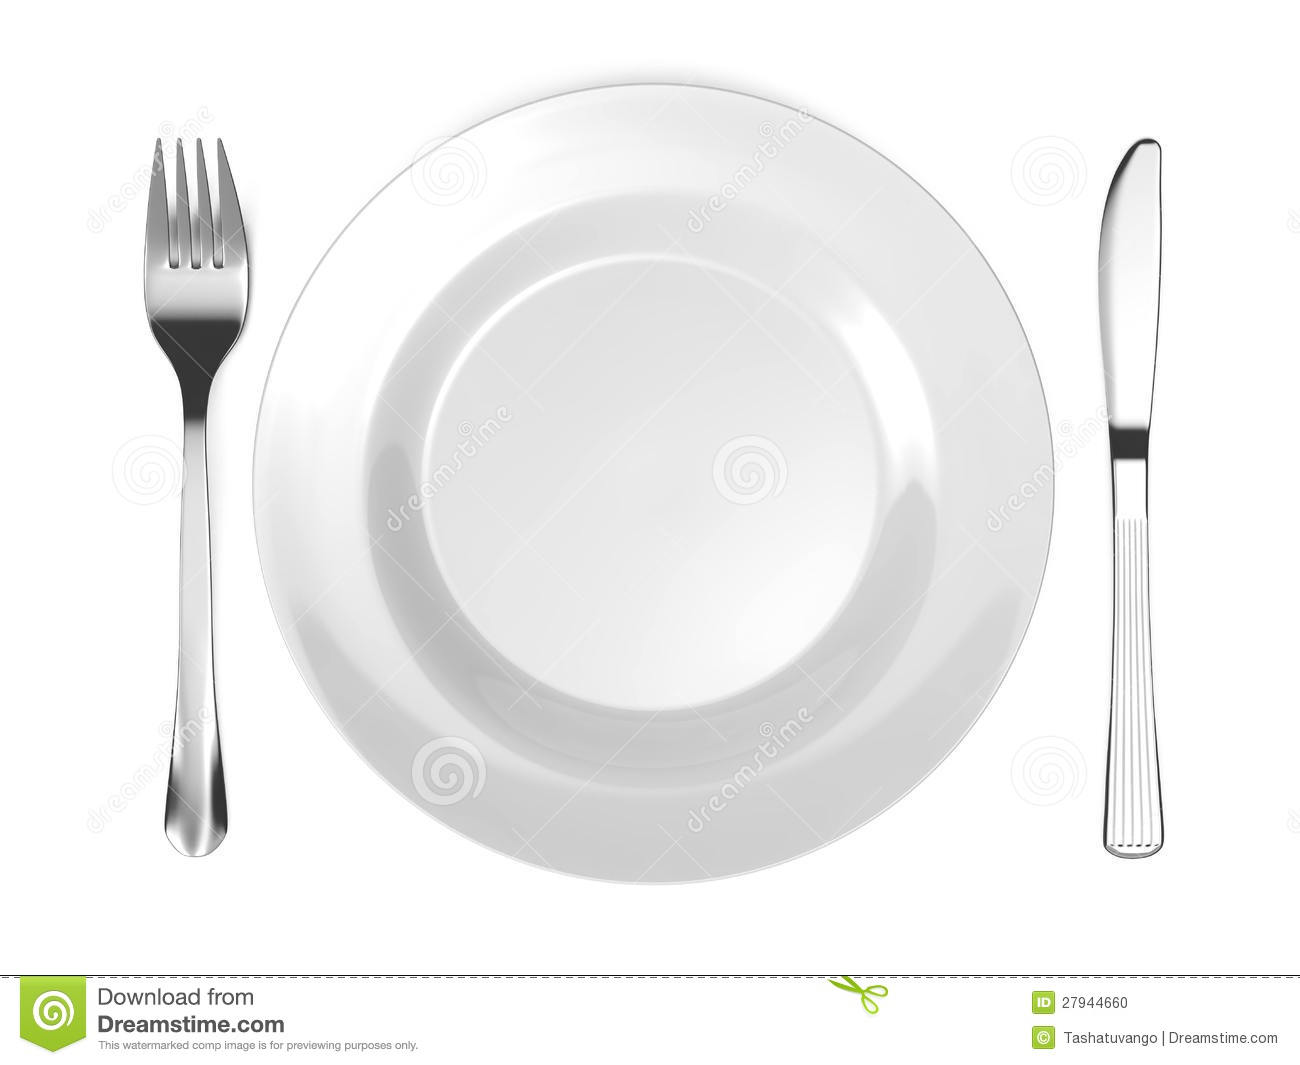 With Fork And Knife Isolated On White Background Mr No Pr No 2 517 2